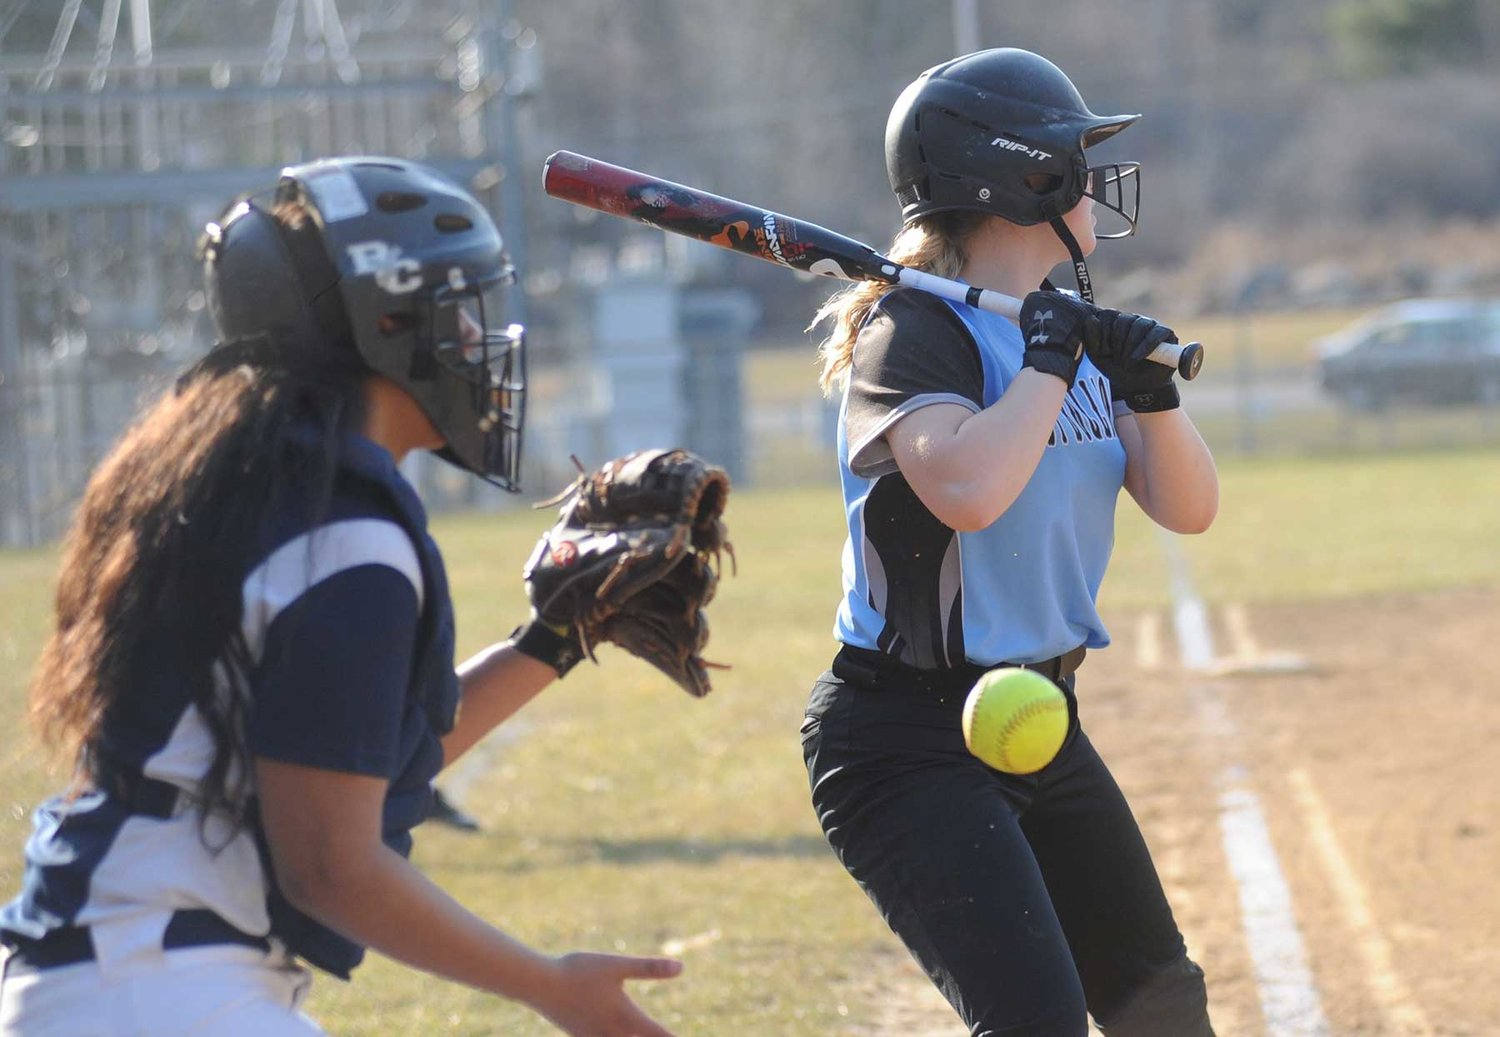 Just lookin! Sullivan West's Morgan Kraack sizes it up and passes on a high pitch.